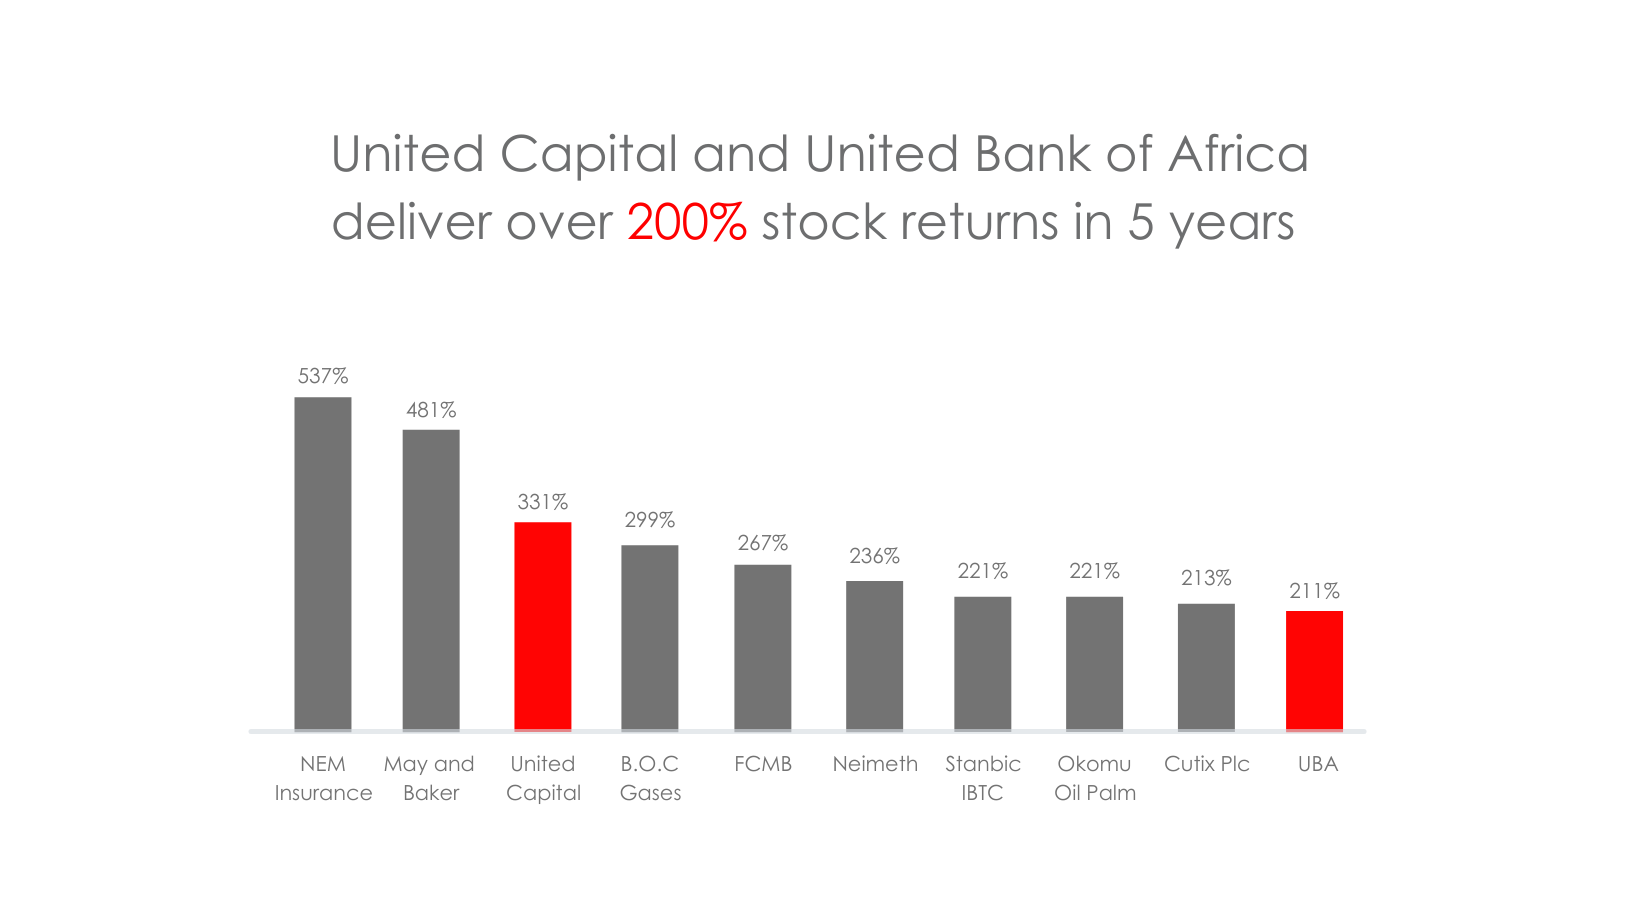 United Capital and United Bank of Africa deliver over 200% stock returns in 5 years